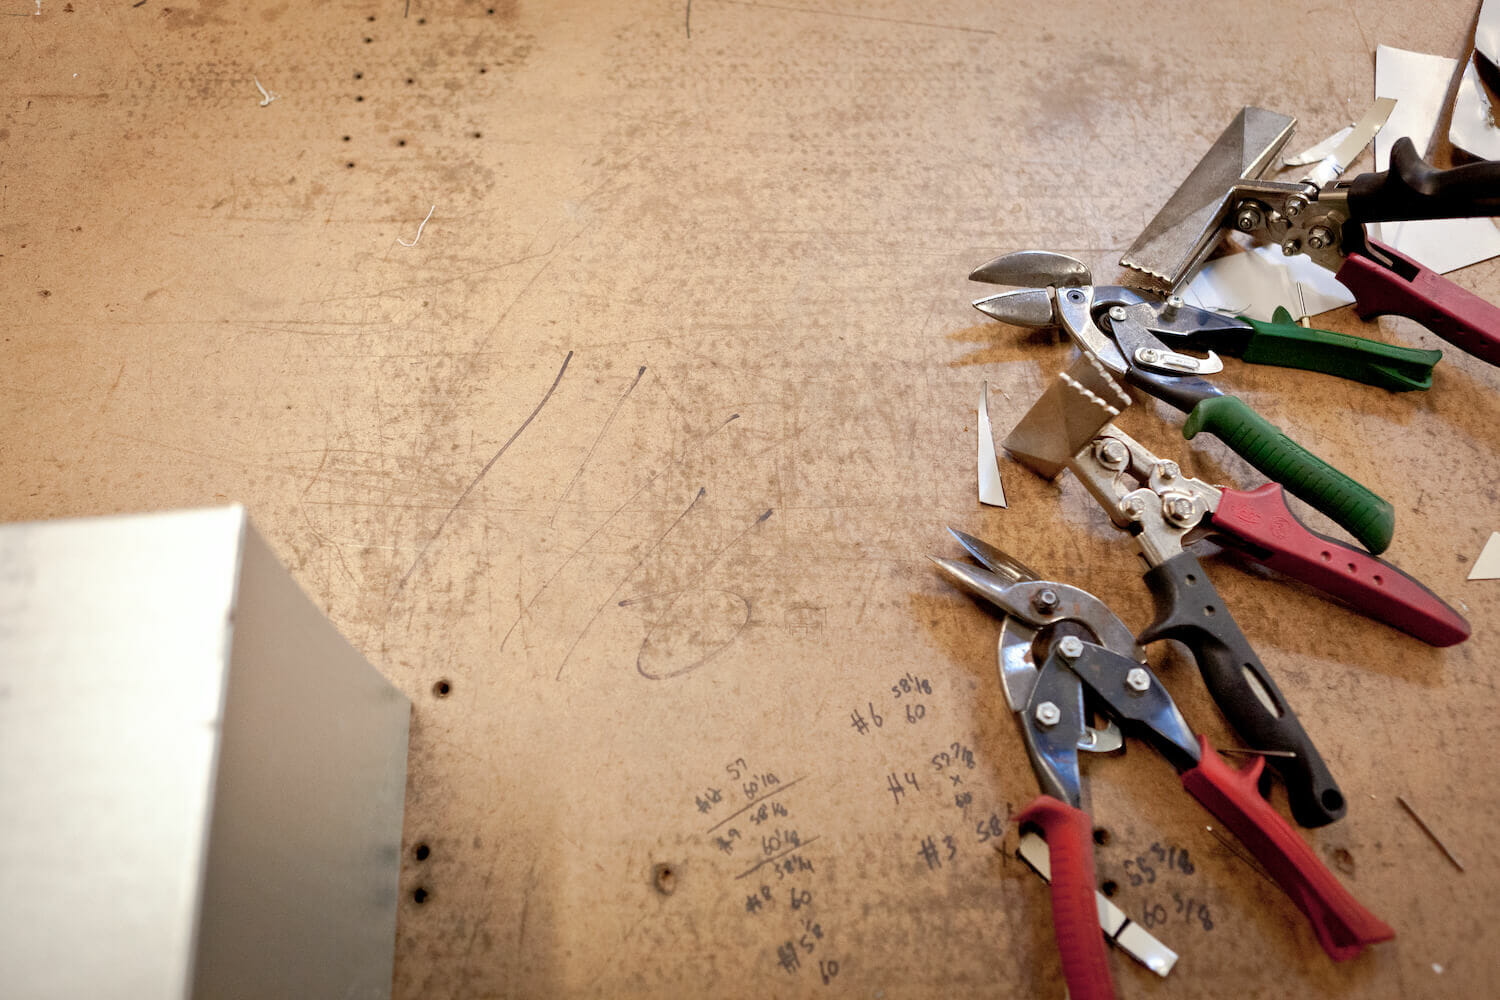 pliers and and wrenches on a brown work table with handwriting